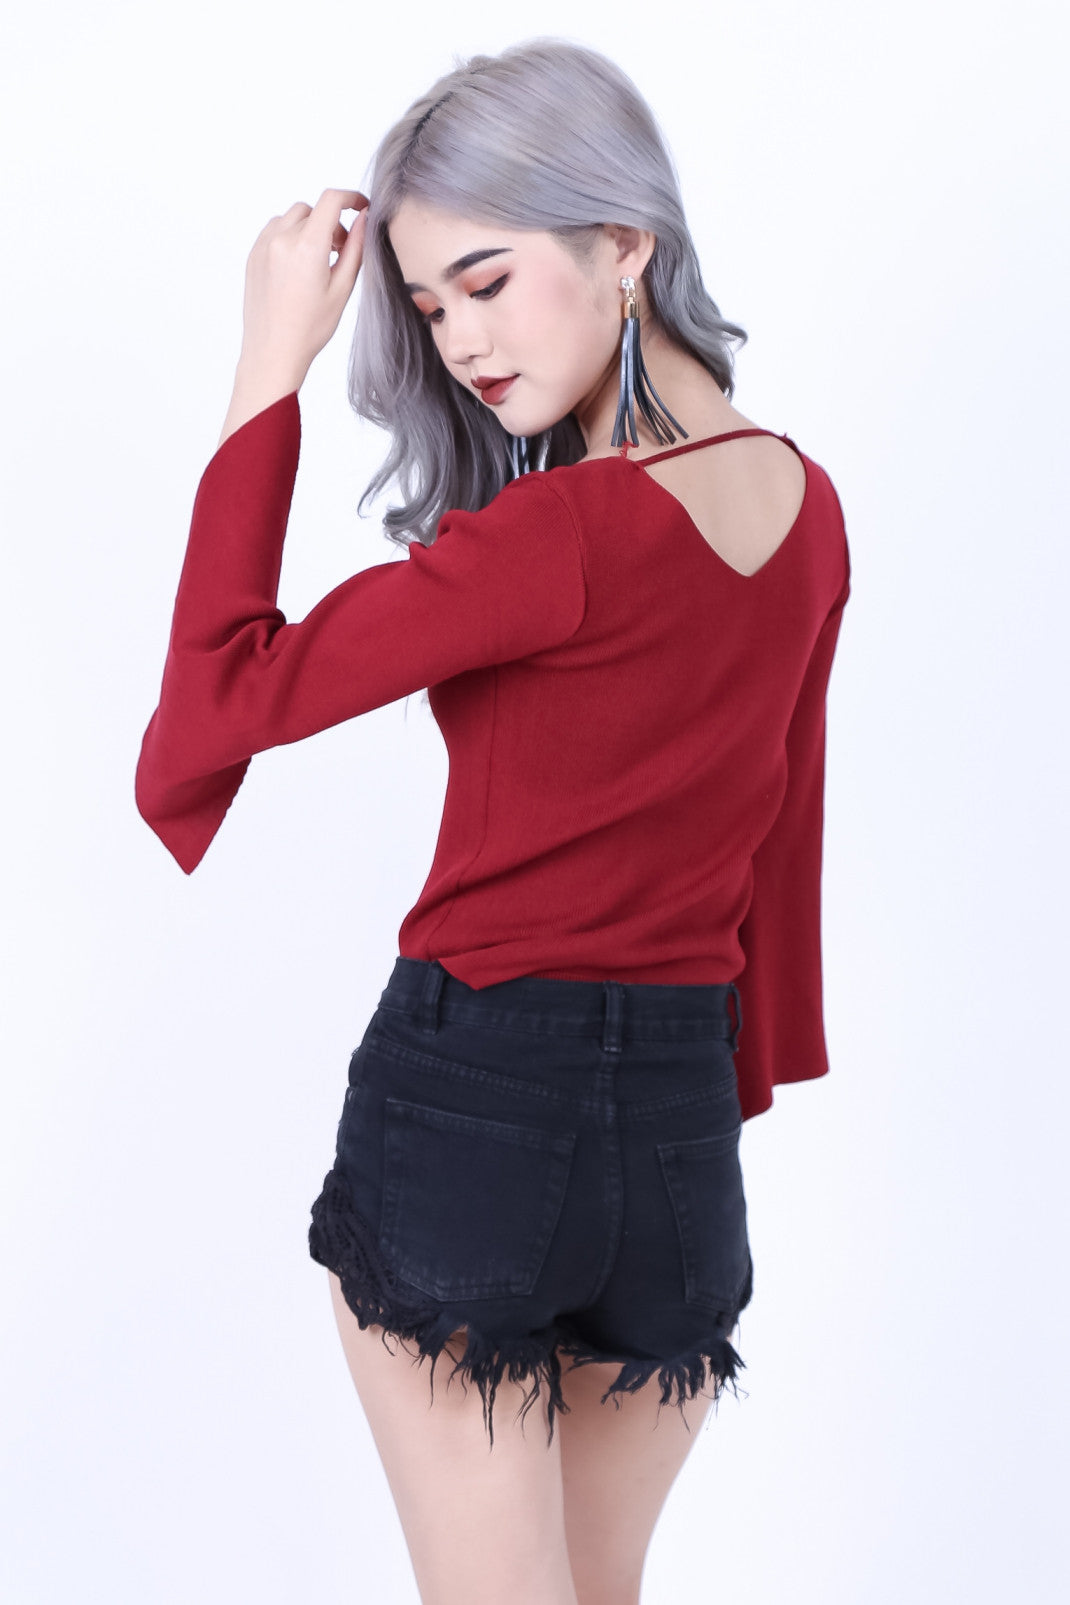 WALK THE LINE KNIT TOP IN WINE